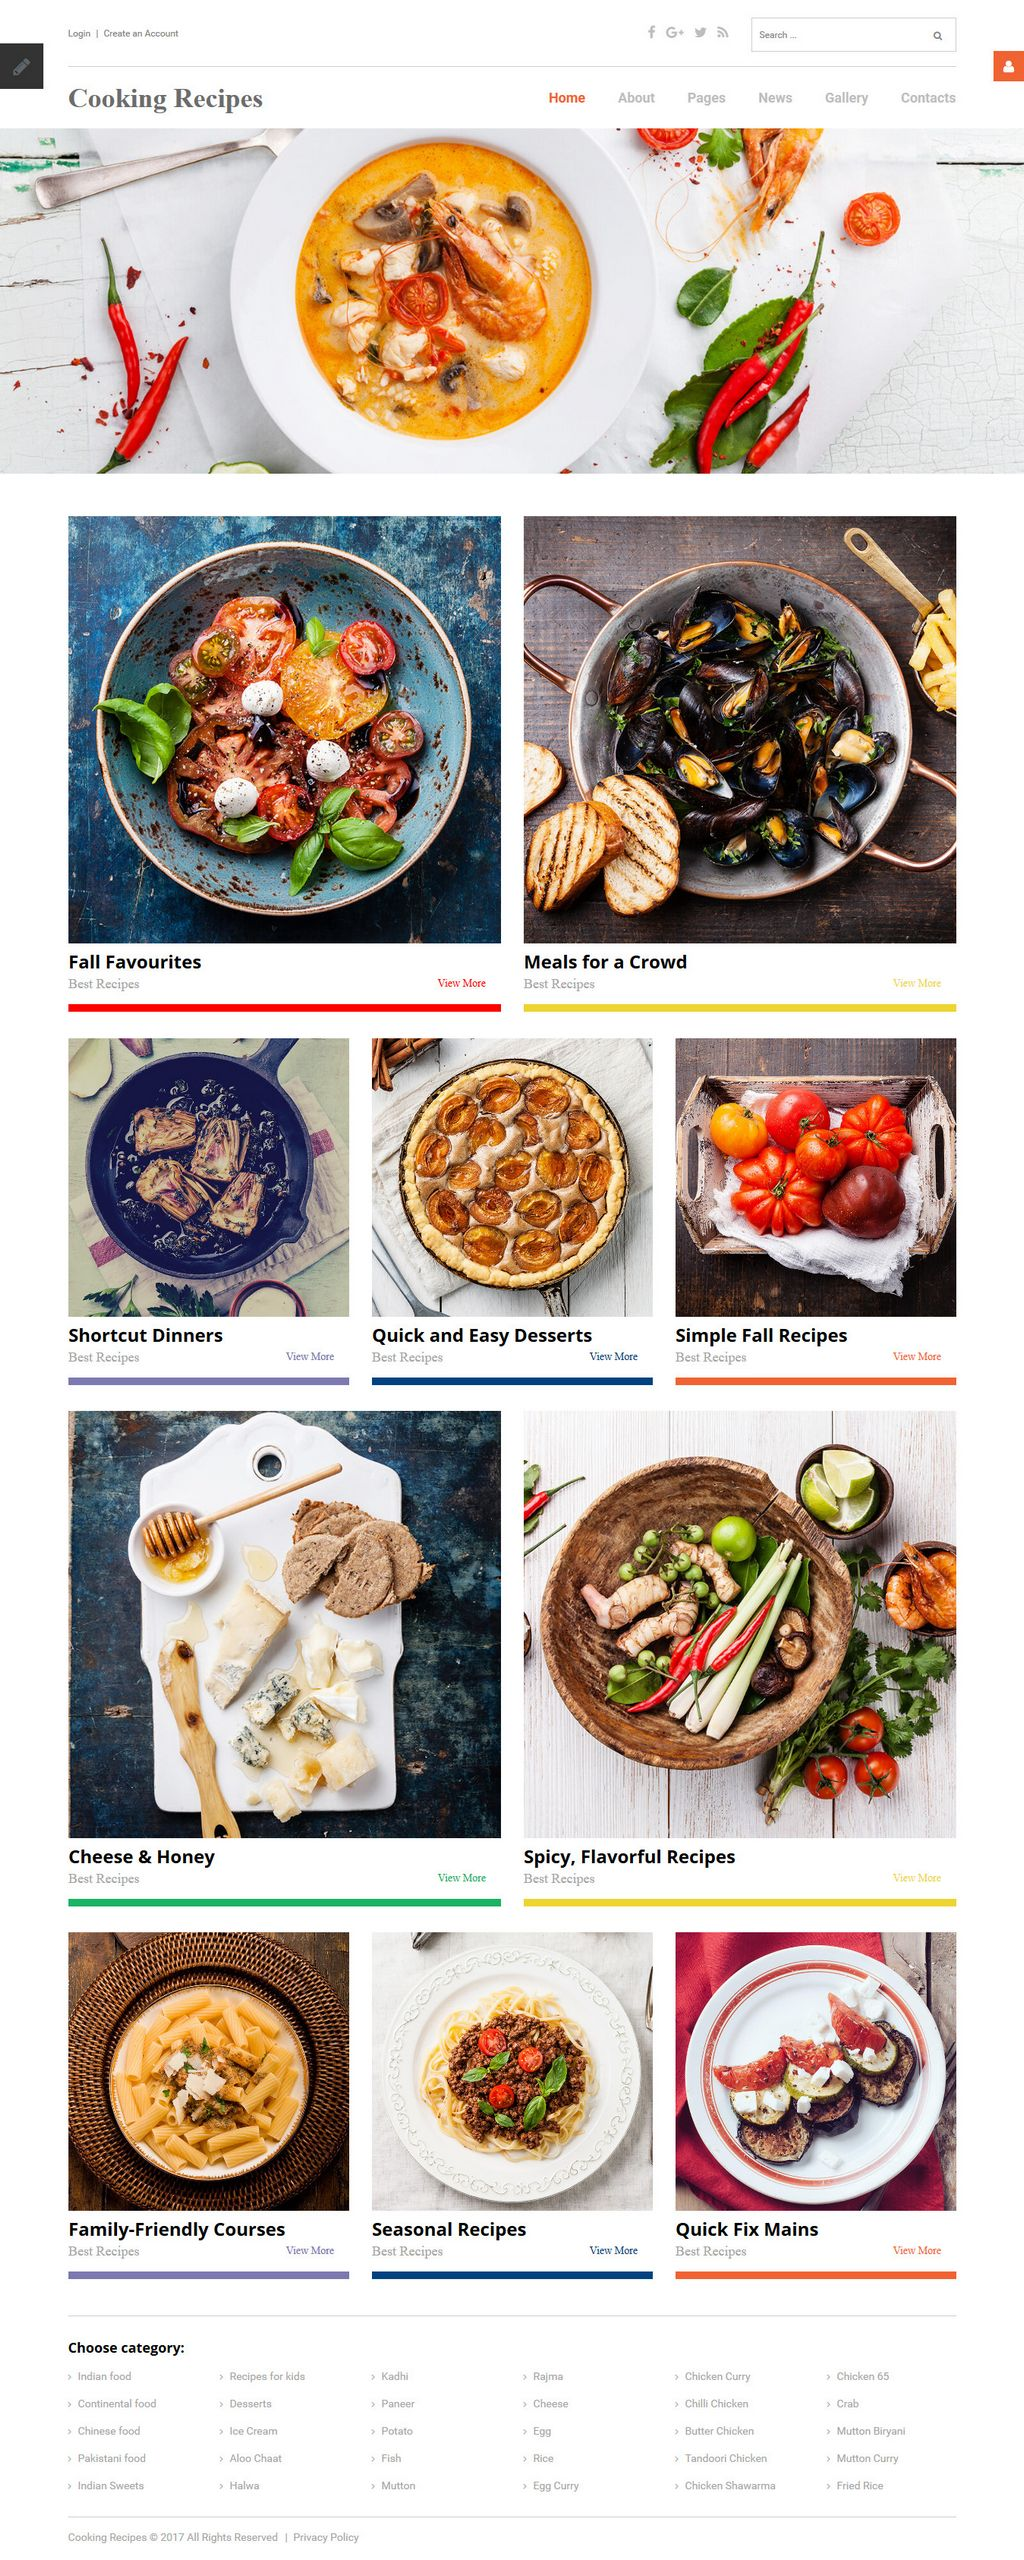 Cooking recipes joomla template by template monster forumfinder Images